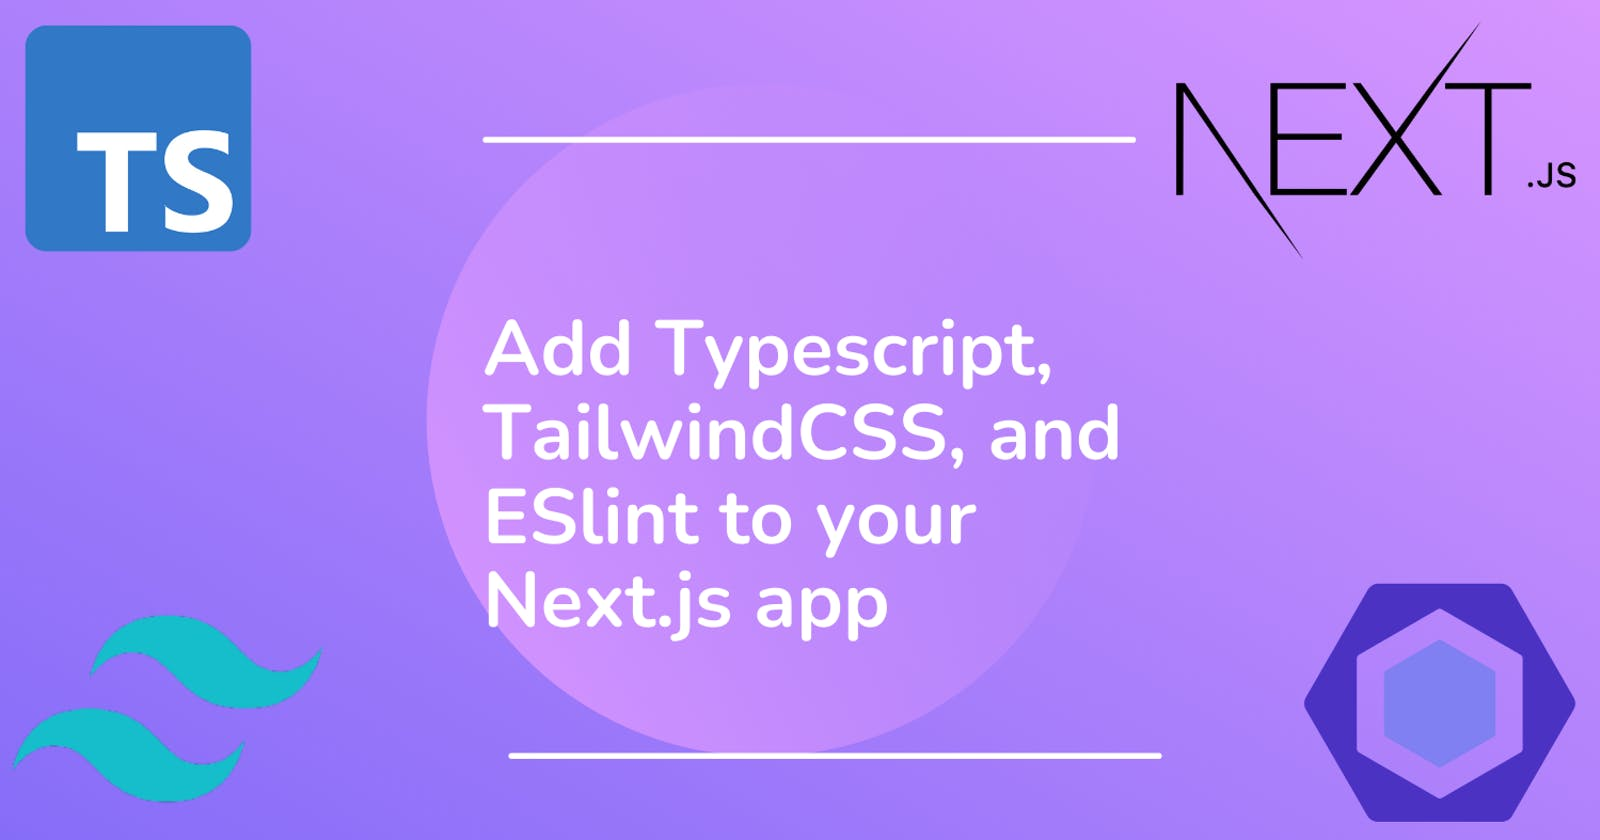 Add Typescript, TailwindCSS, and ESlint to your Next.js app